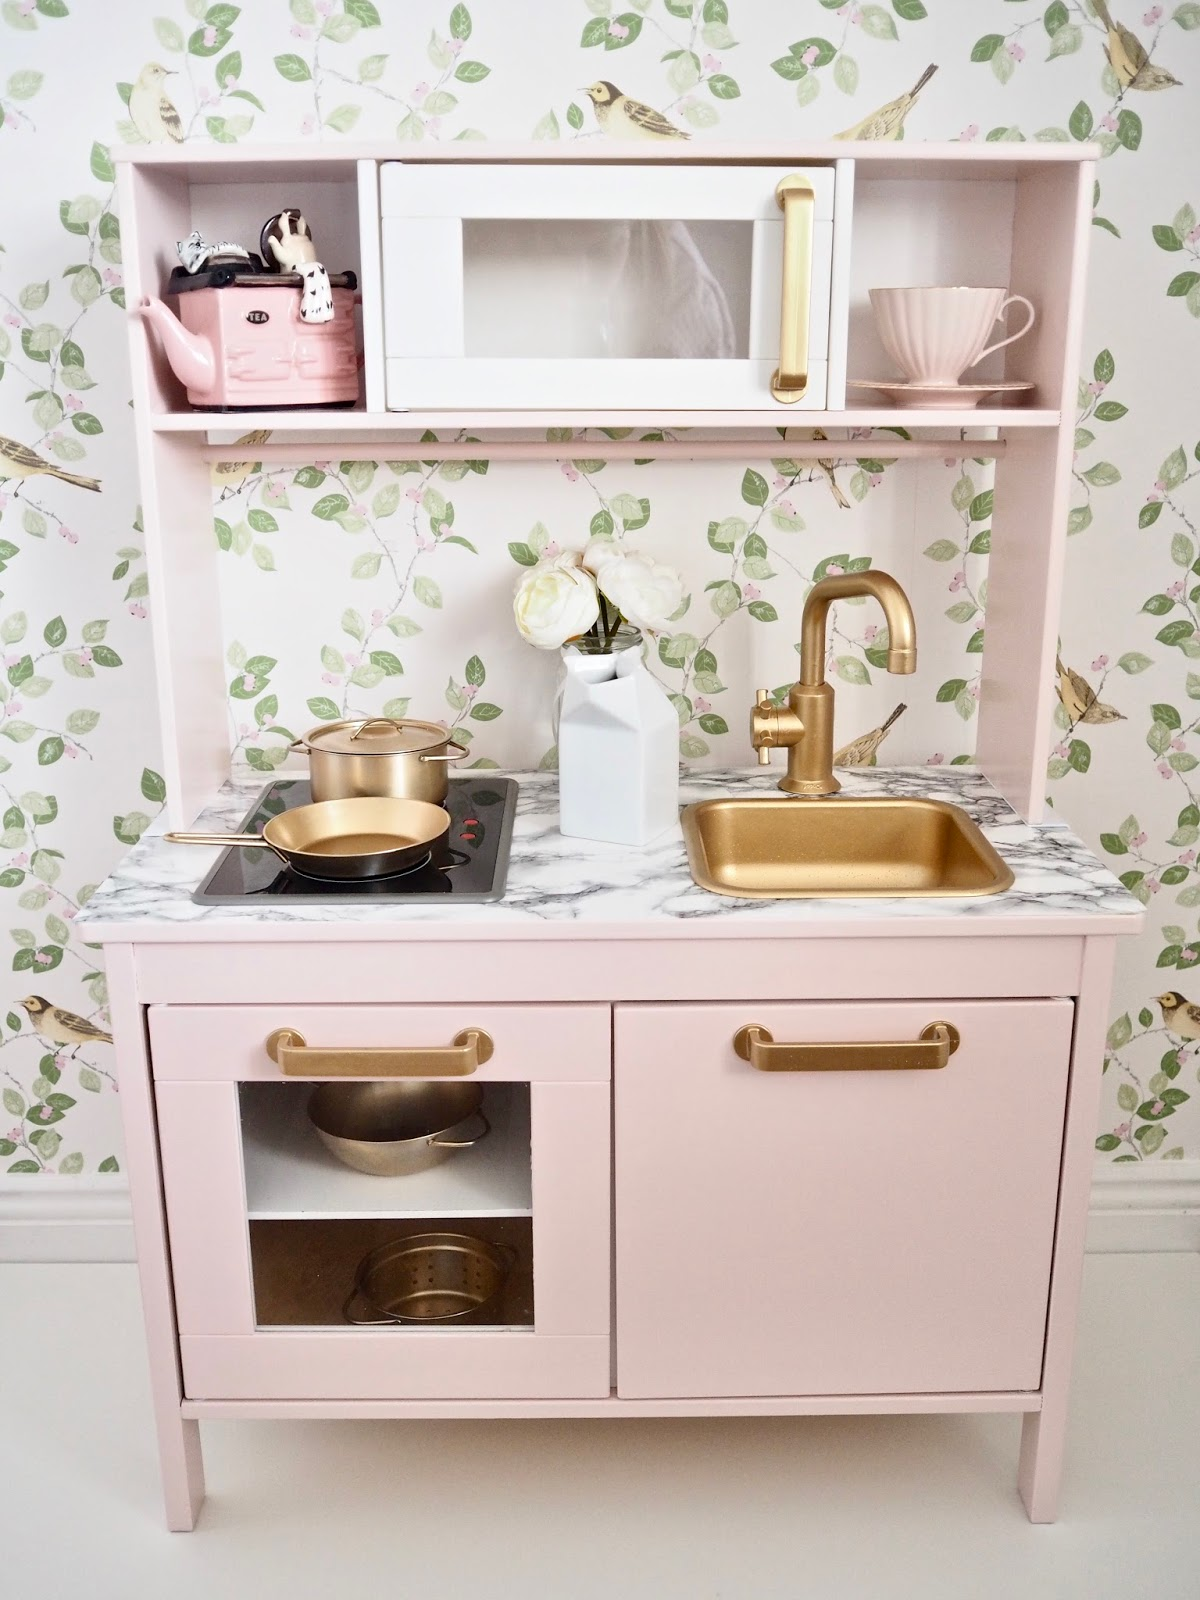 Play Kitchen Ikea Kohler Faucets Parts Duktig Makeover Dainty Dress Diaries I Have Put Together A Youtube Video Also On How Transformed My Mini Will Make Sure To Link The At Bottom Of This Post